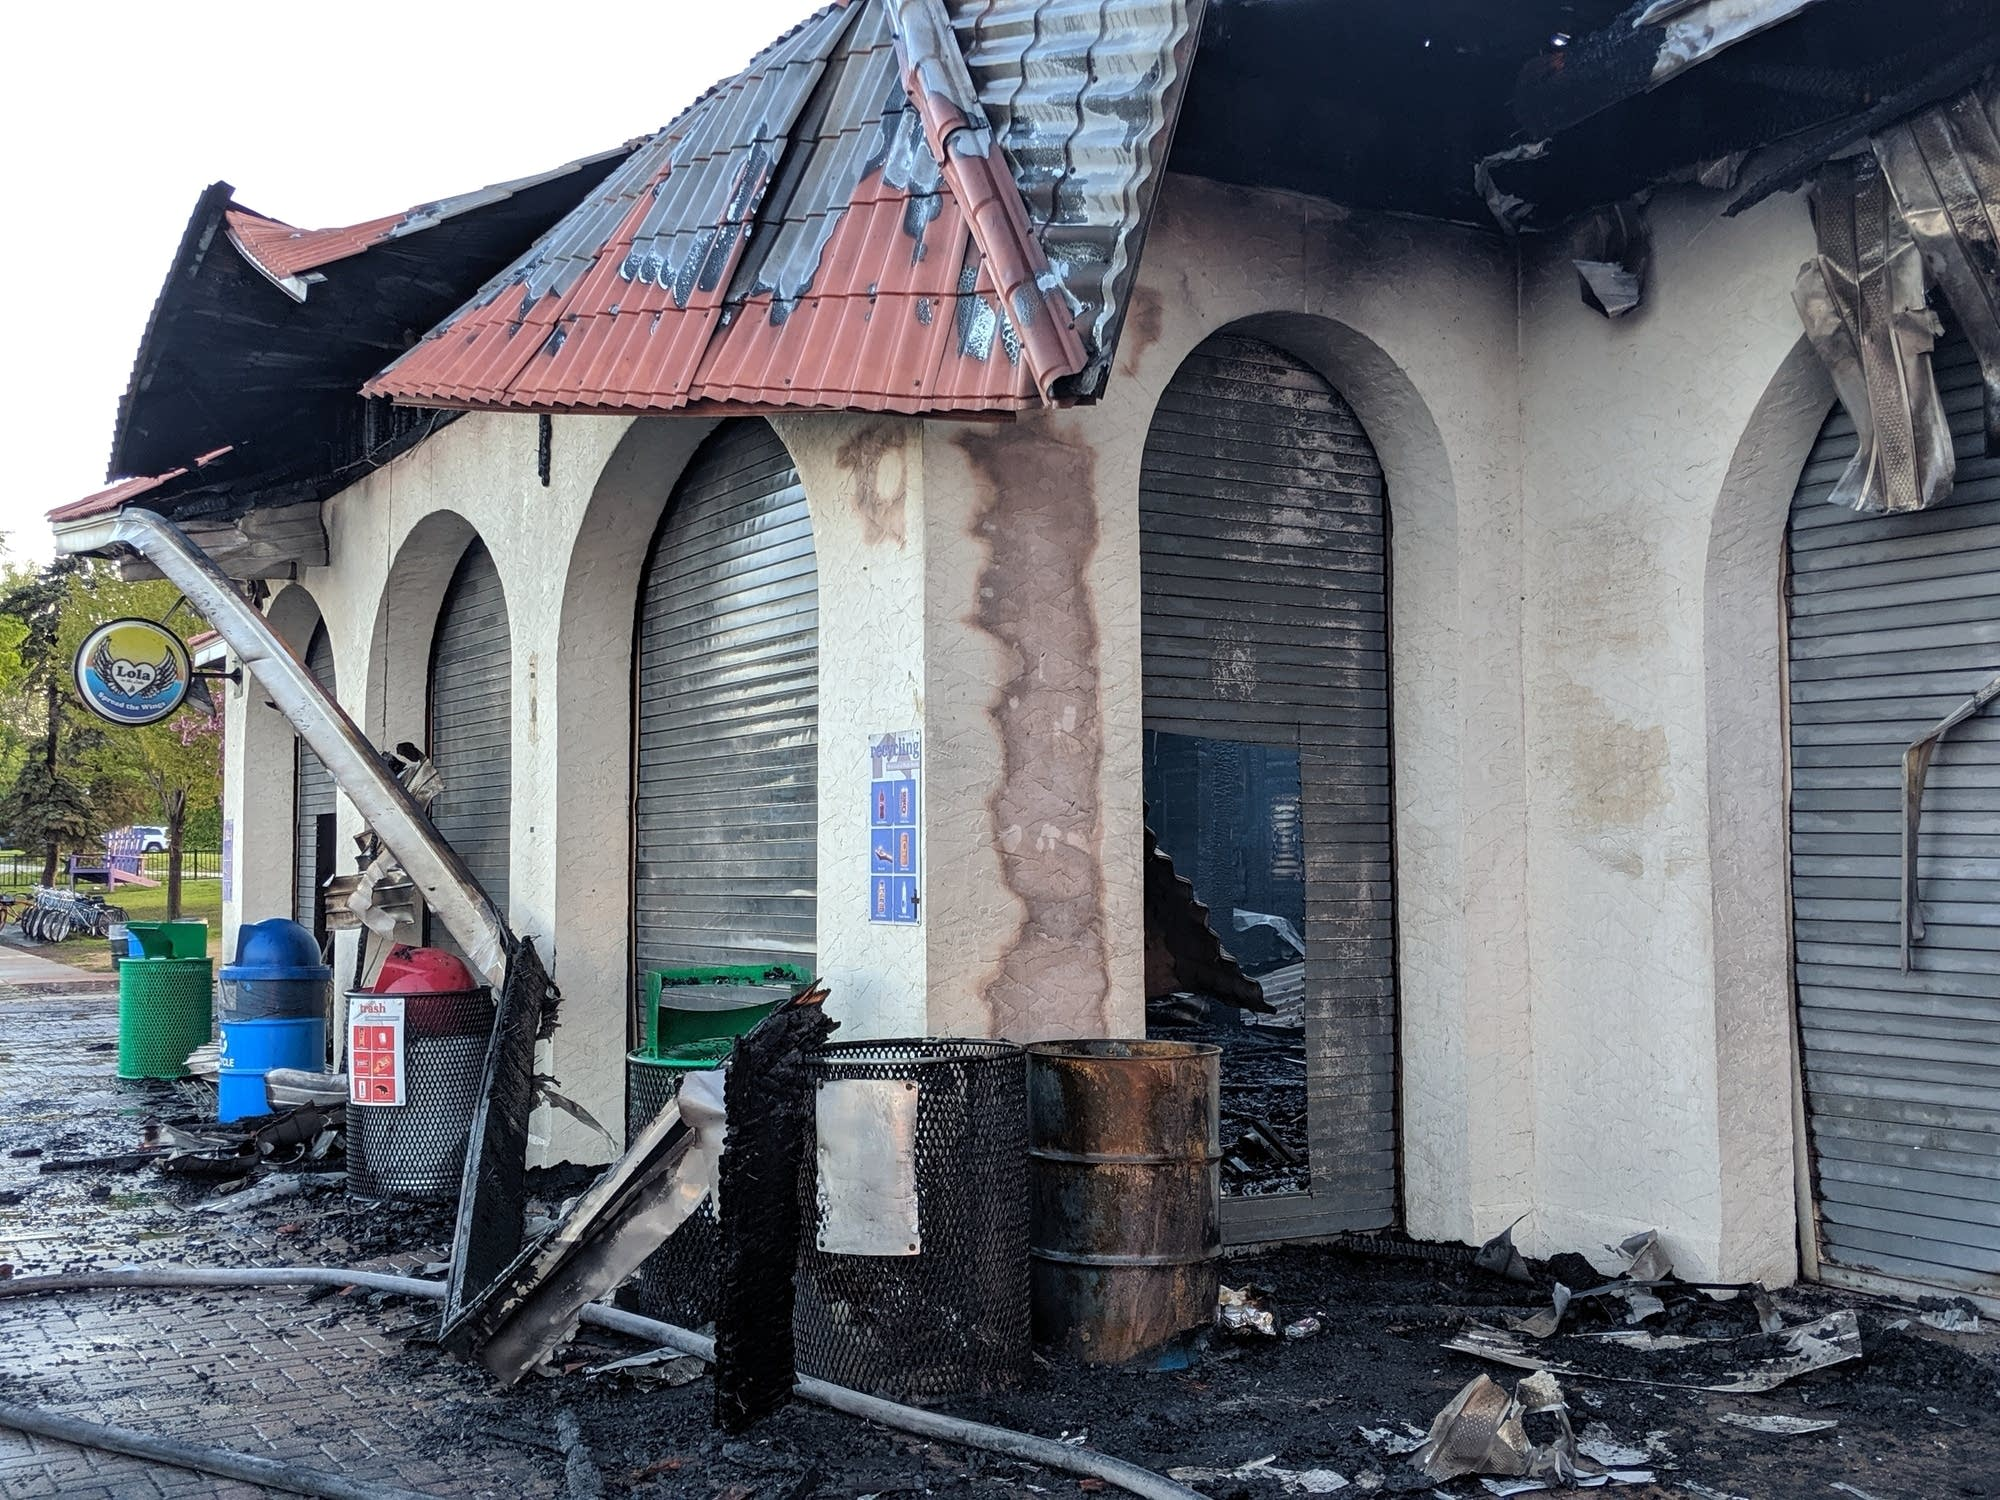 An early morning fire damaged the pavilion on Bde Maka Ska.